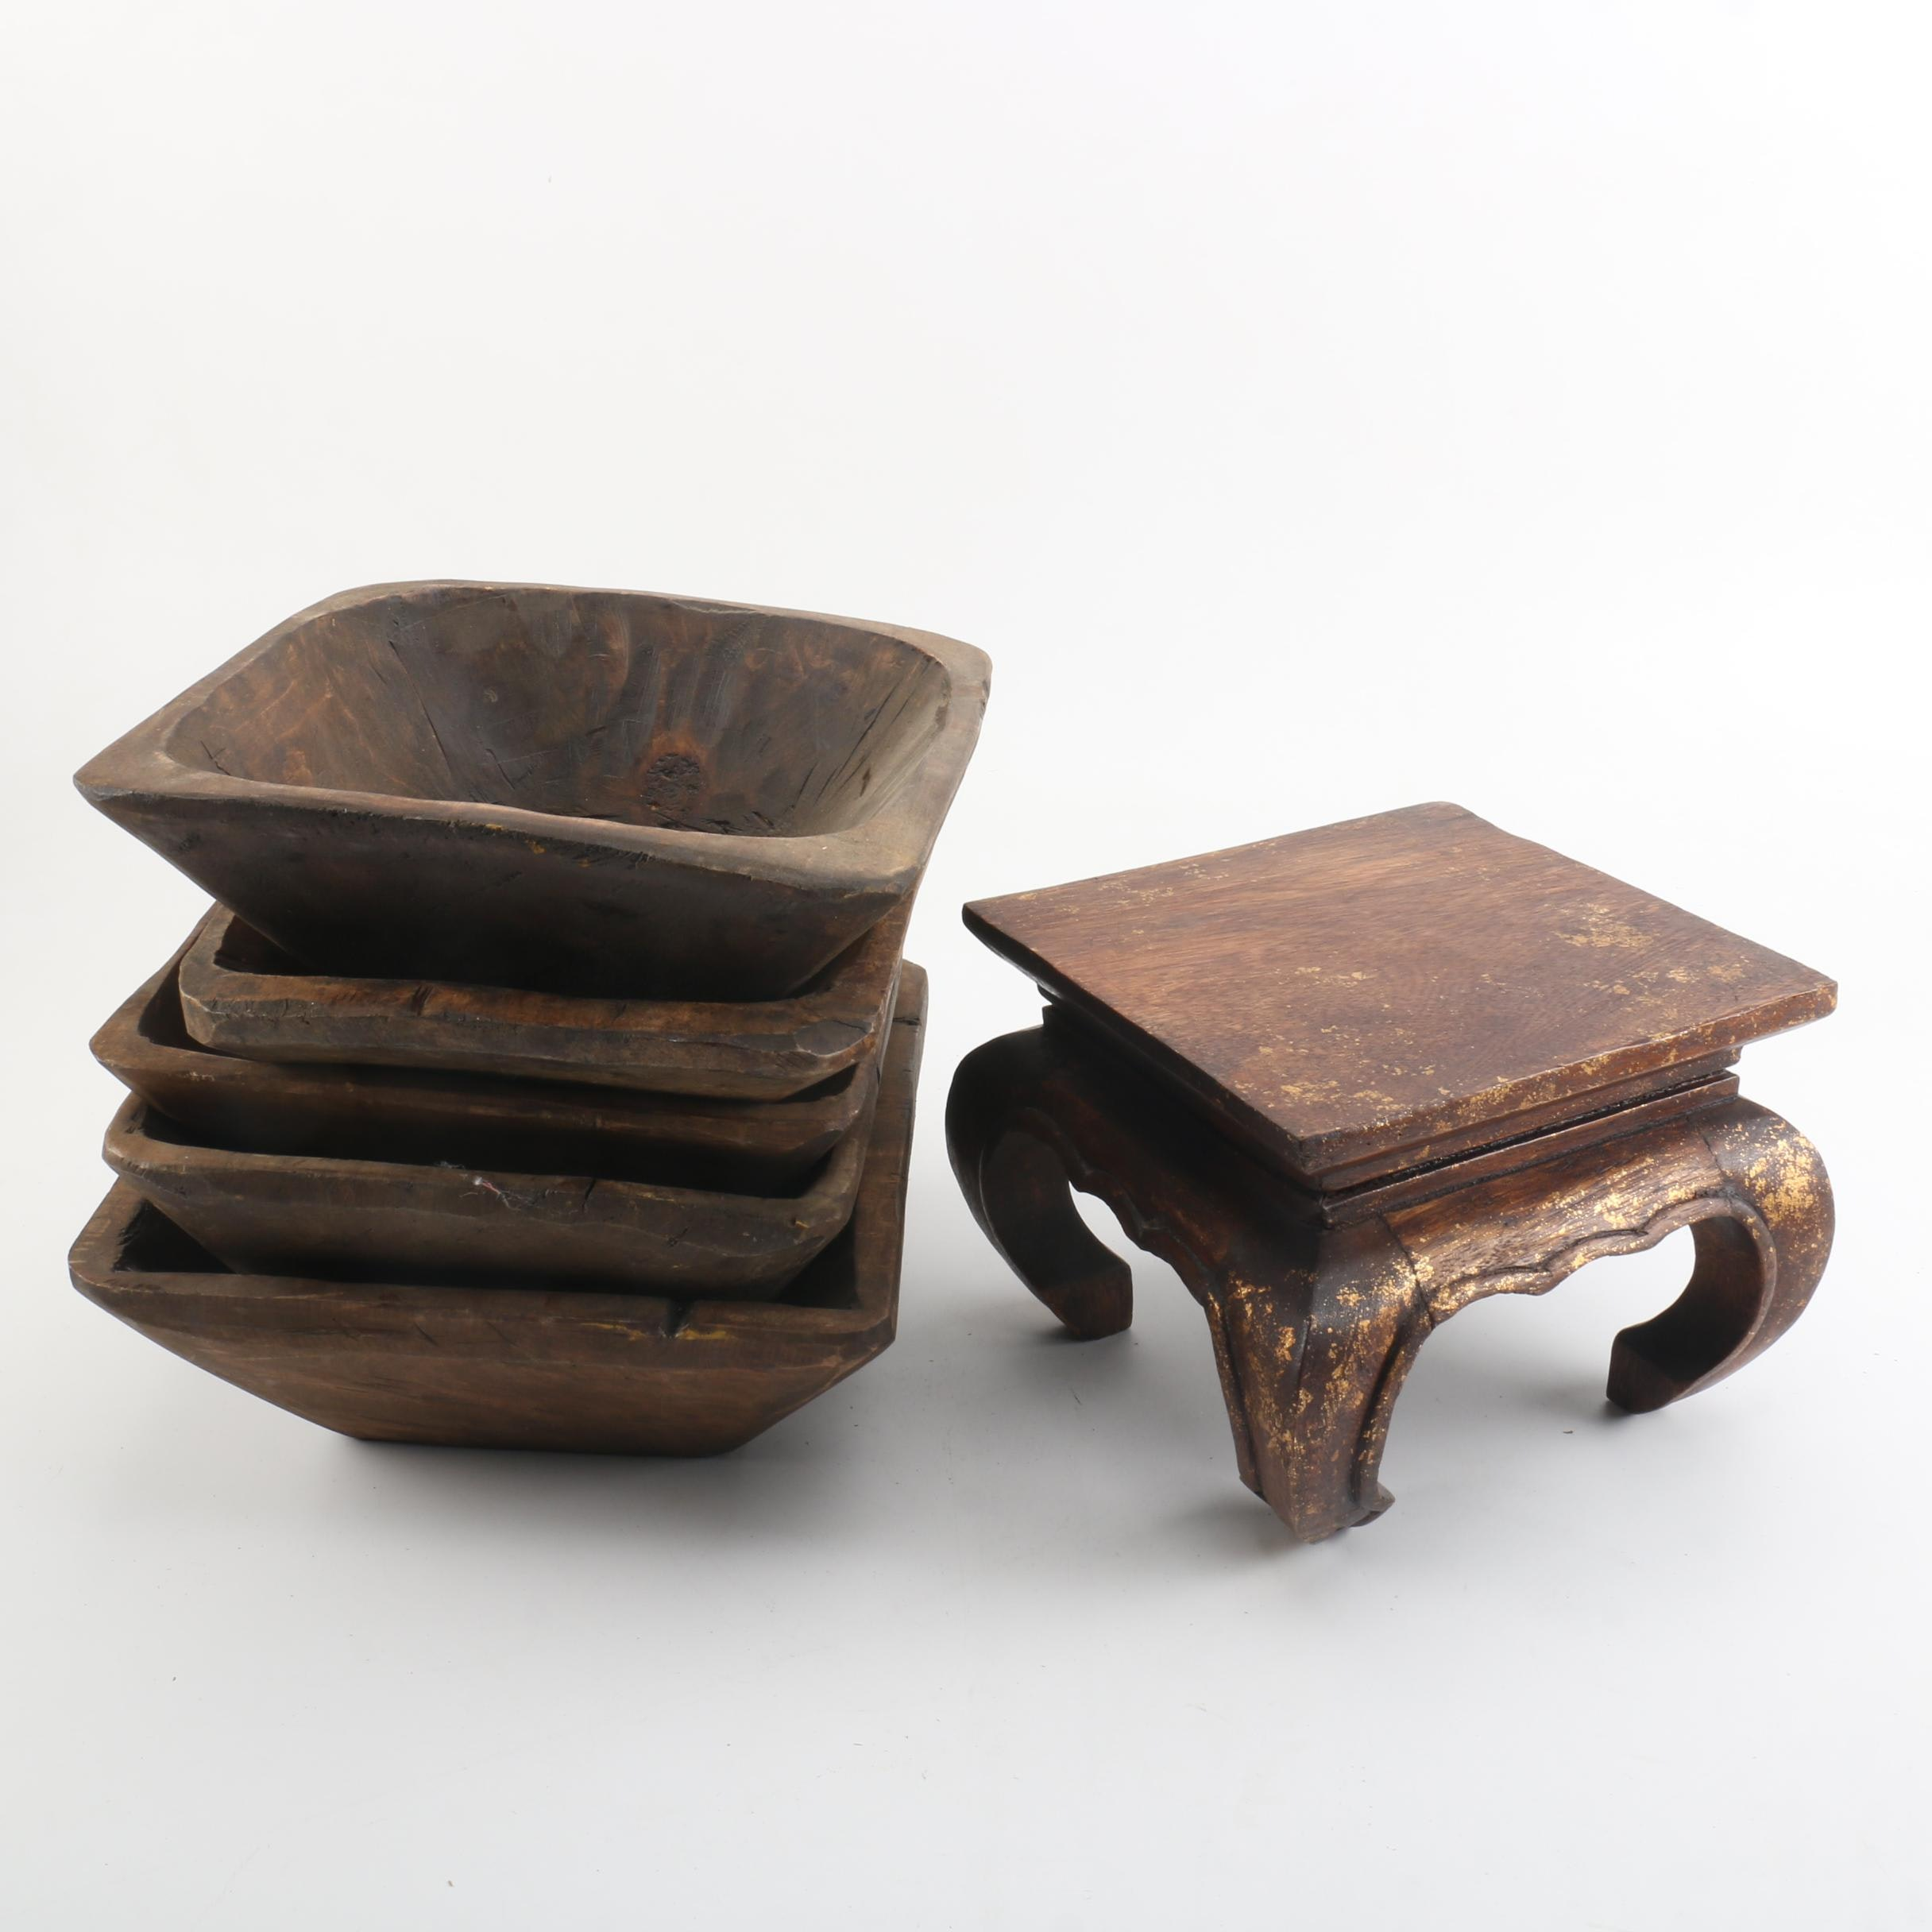 Antique Treenware Trenchers and Footstool